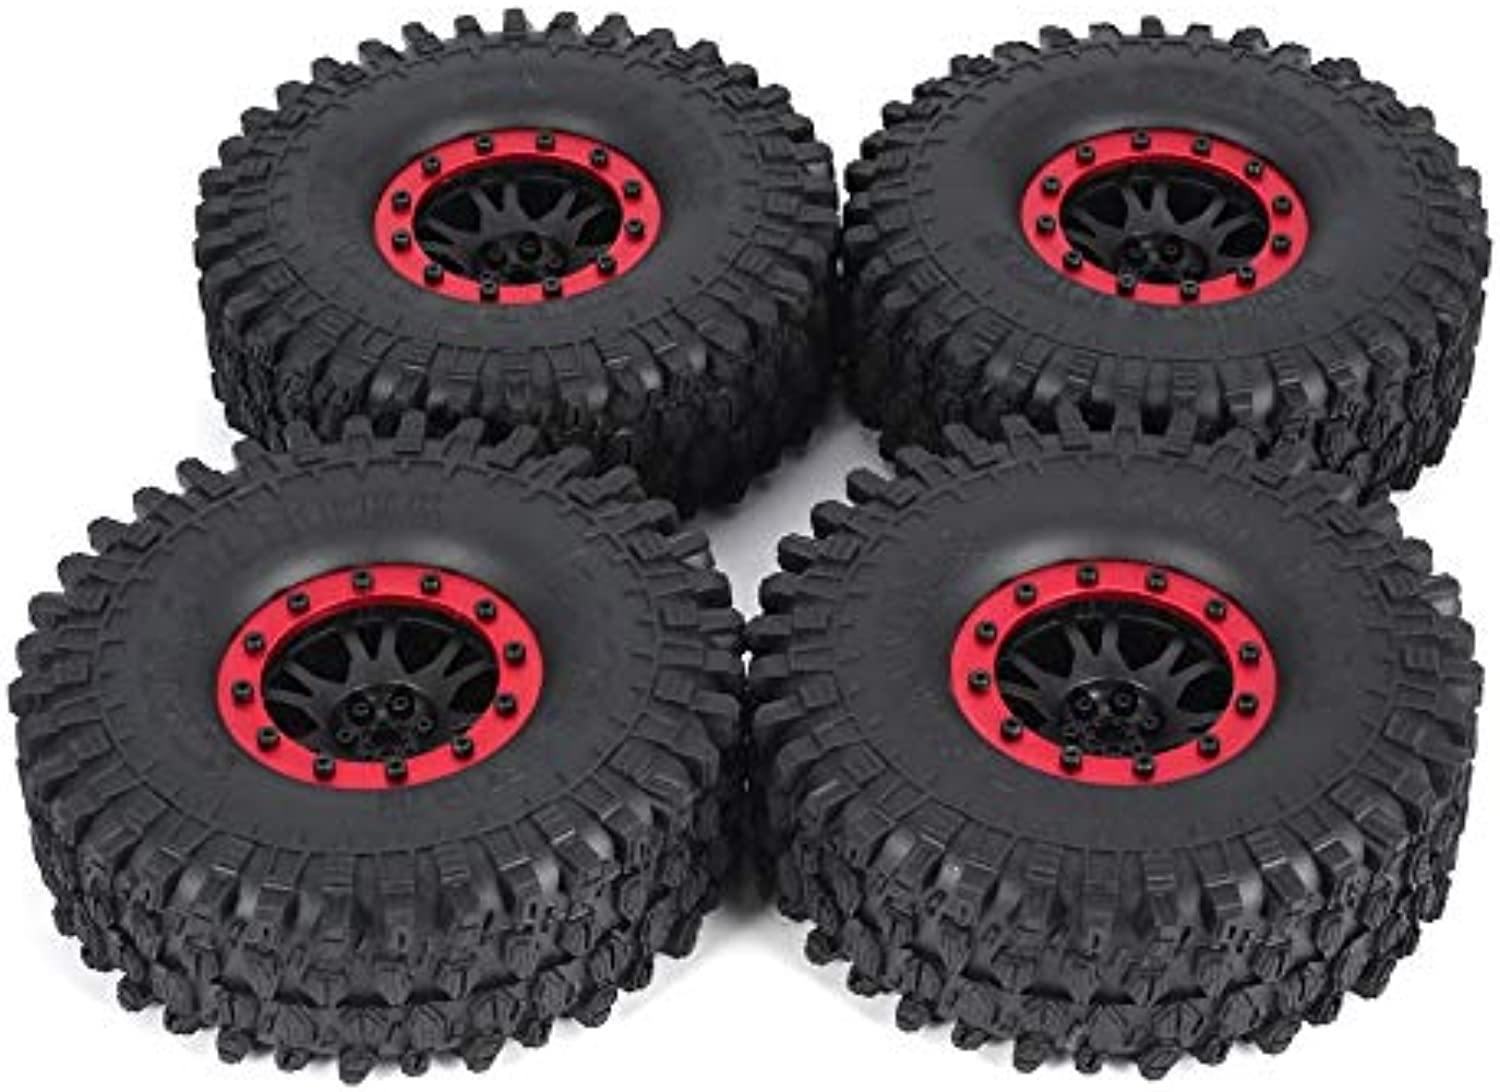 4pcs AUSTAR 5020 110mm 1.9in Rim Rubber Tyre Tires Beadlock Wheel Set for Axial SCX10 RC4WD D90 1 10 RC Crawler Car Model